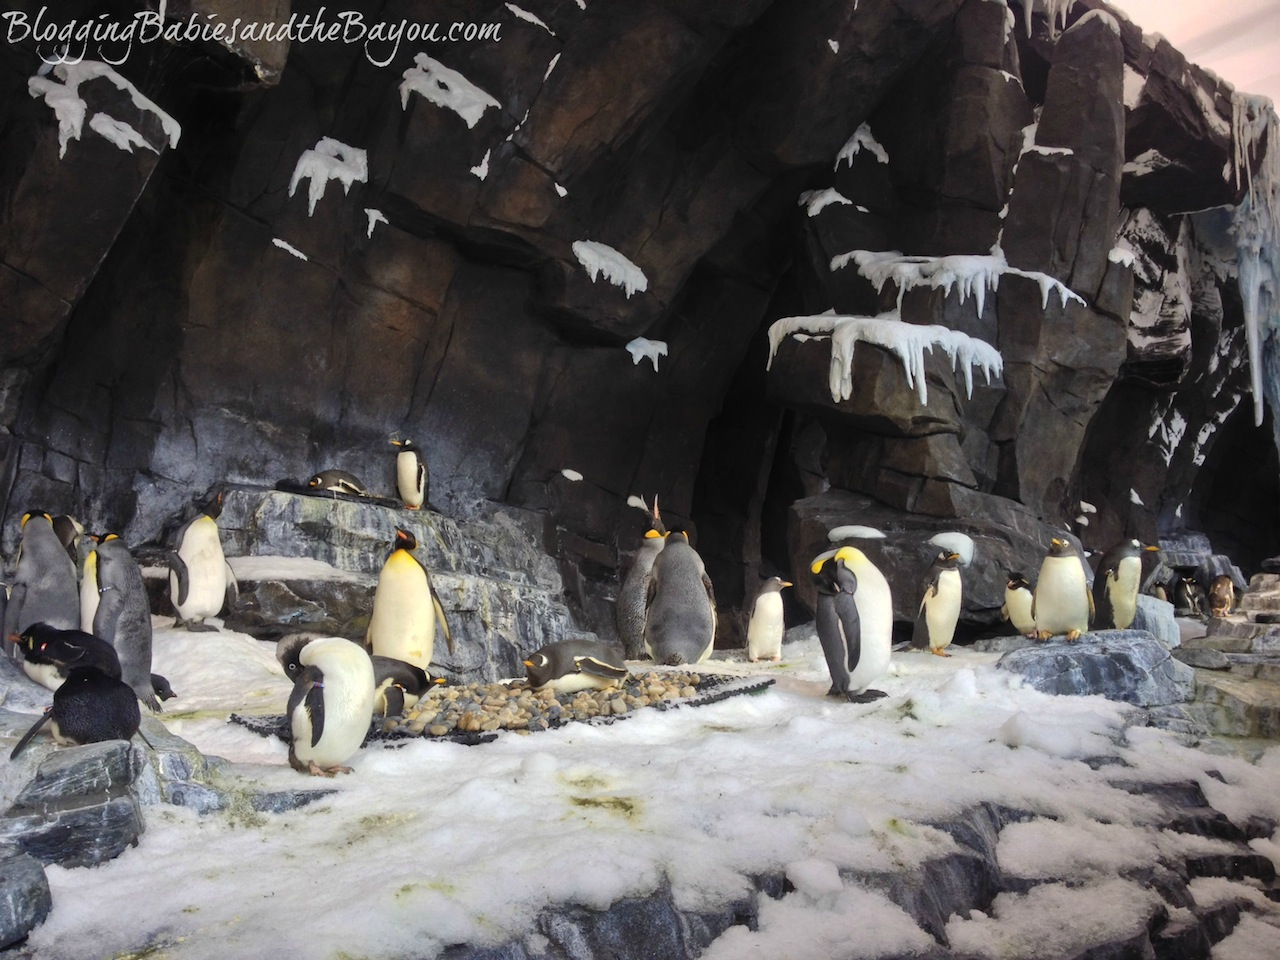 Empire of the Penguins Exhibt at Sea World Orlando Florida #BayouTravel